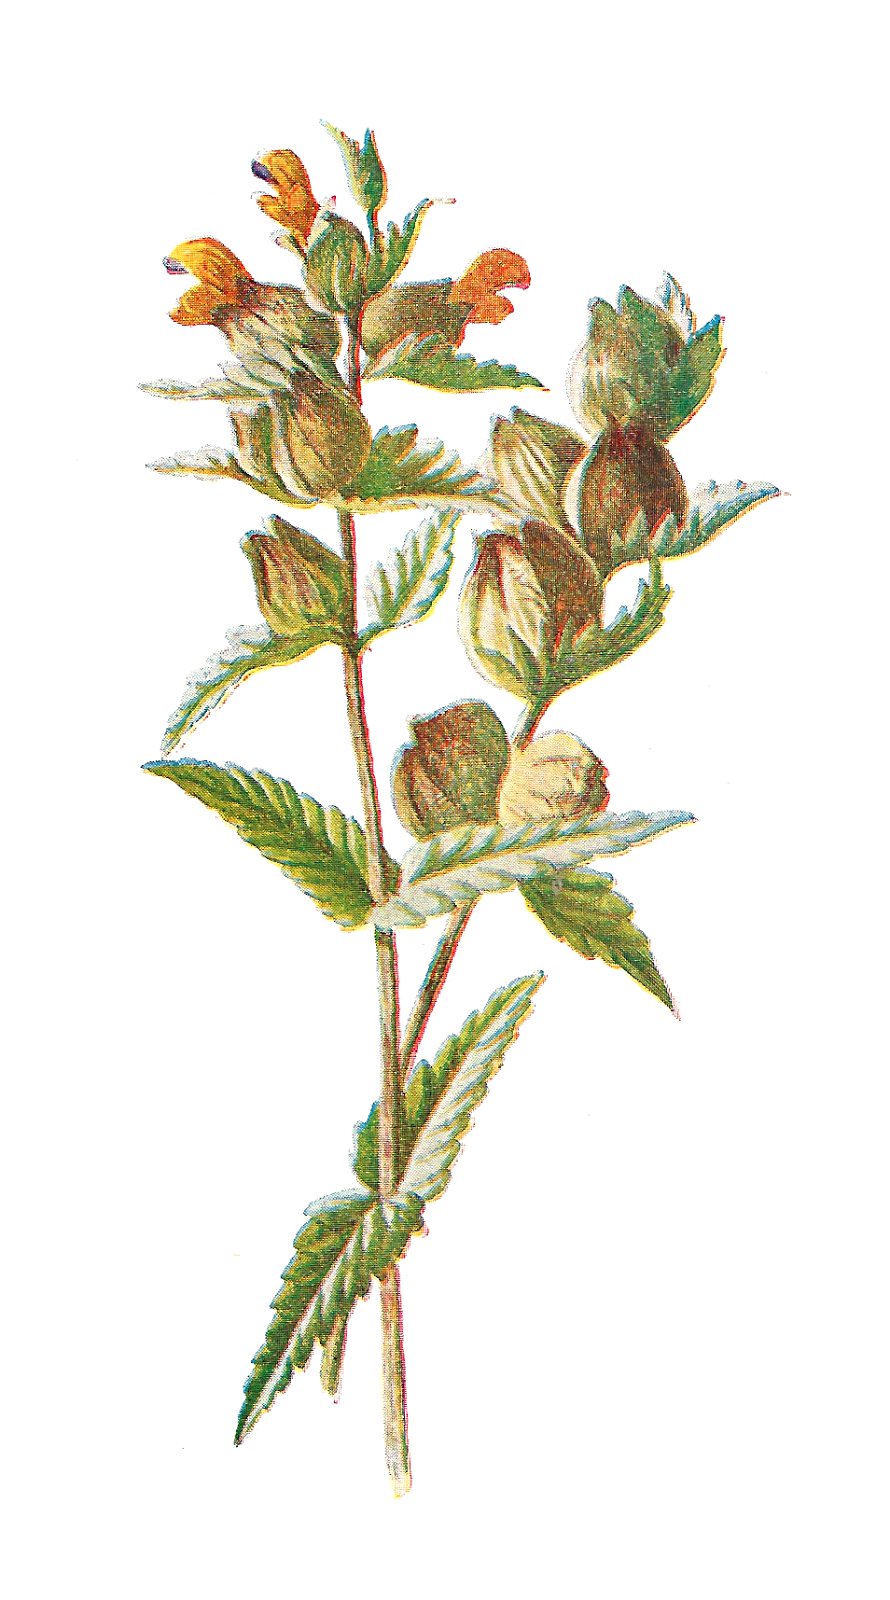 Wildflower background free clipart jpg library stock Free Wildflower Cliparts, Download Free Clip Art, Free Clip ... jpg library stock